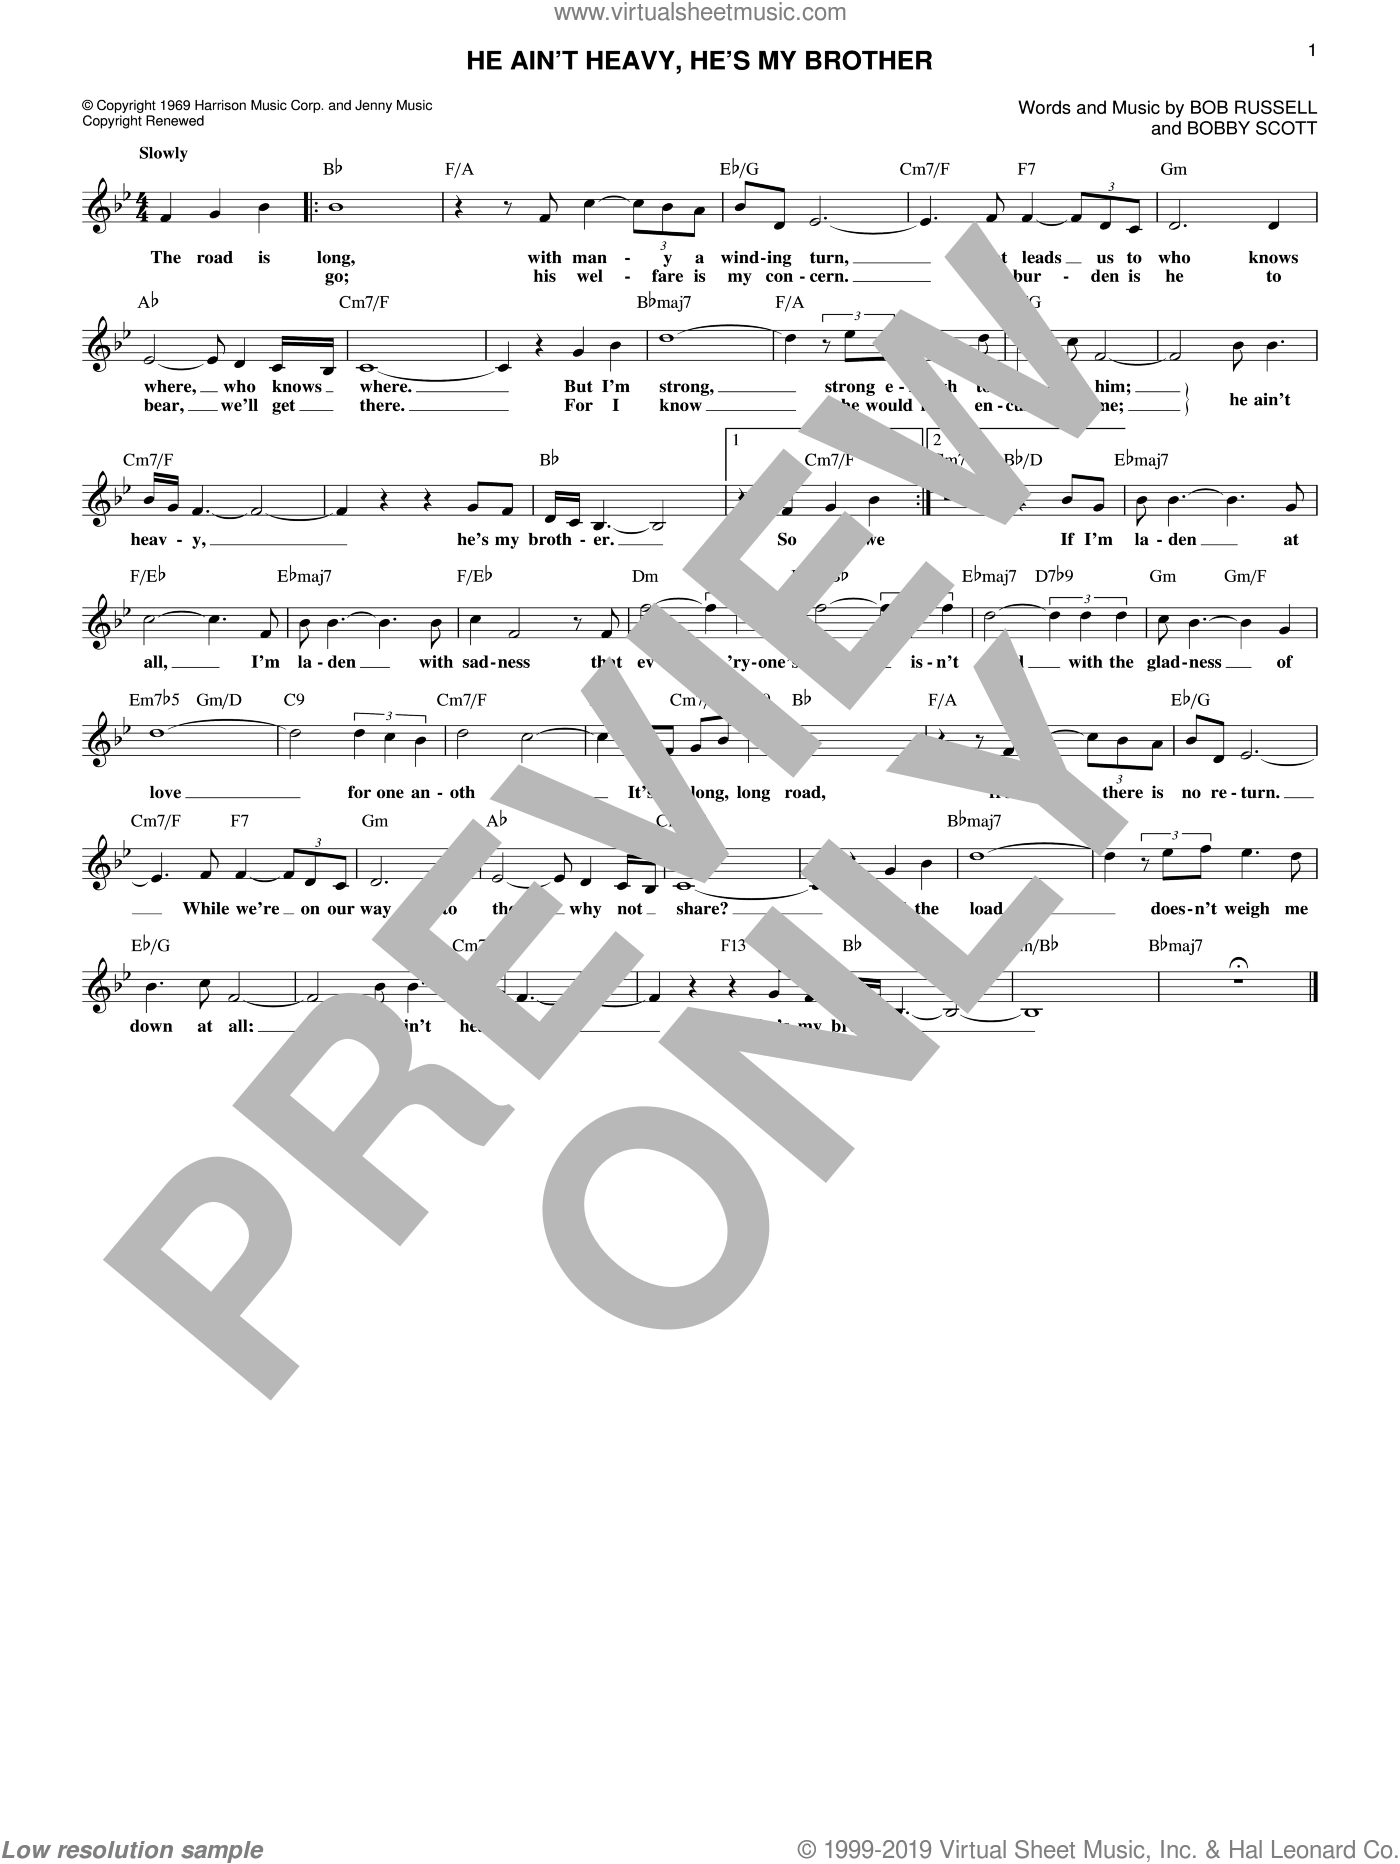 He Ain't Heavy, He's My Brother sheet music for voice and other instruments (fake book) by The Hollies, Neil Diamond, Bob Russell and Bobby Scott, intermediate skill level